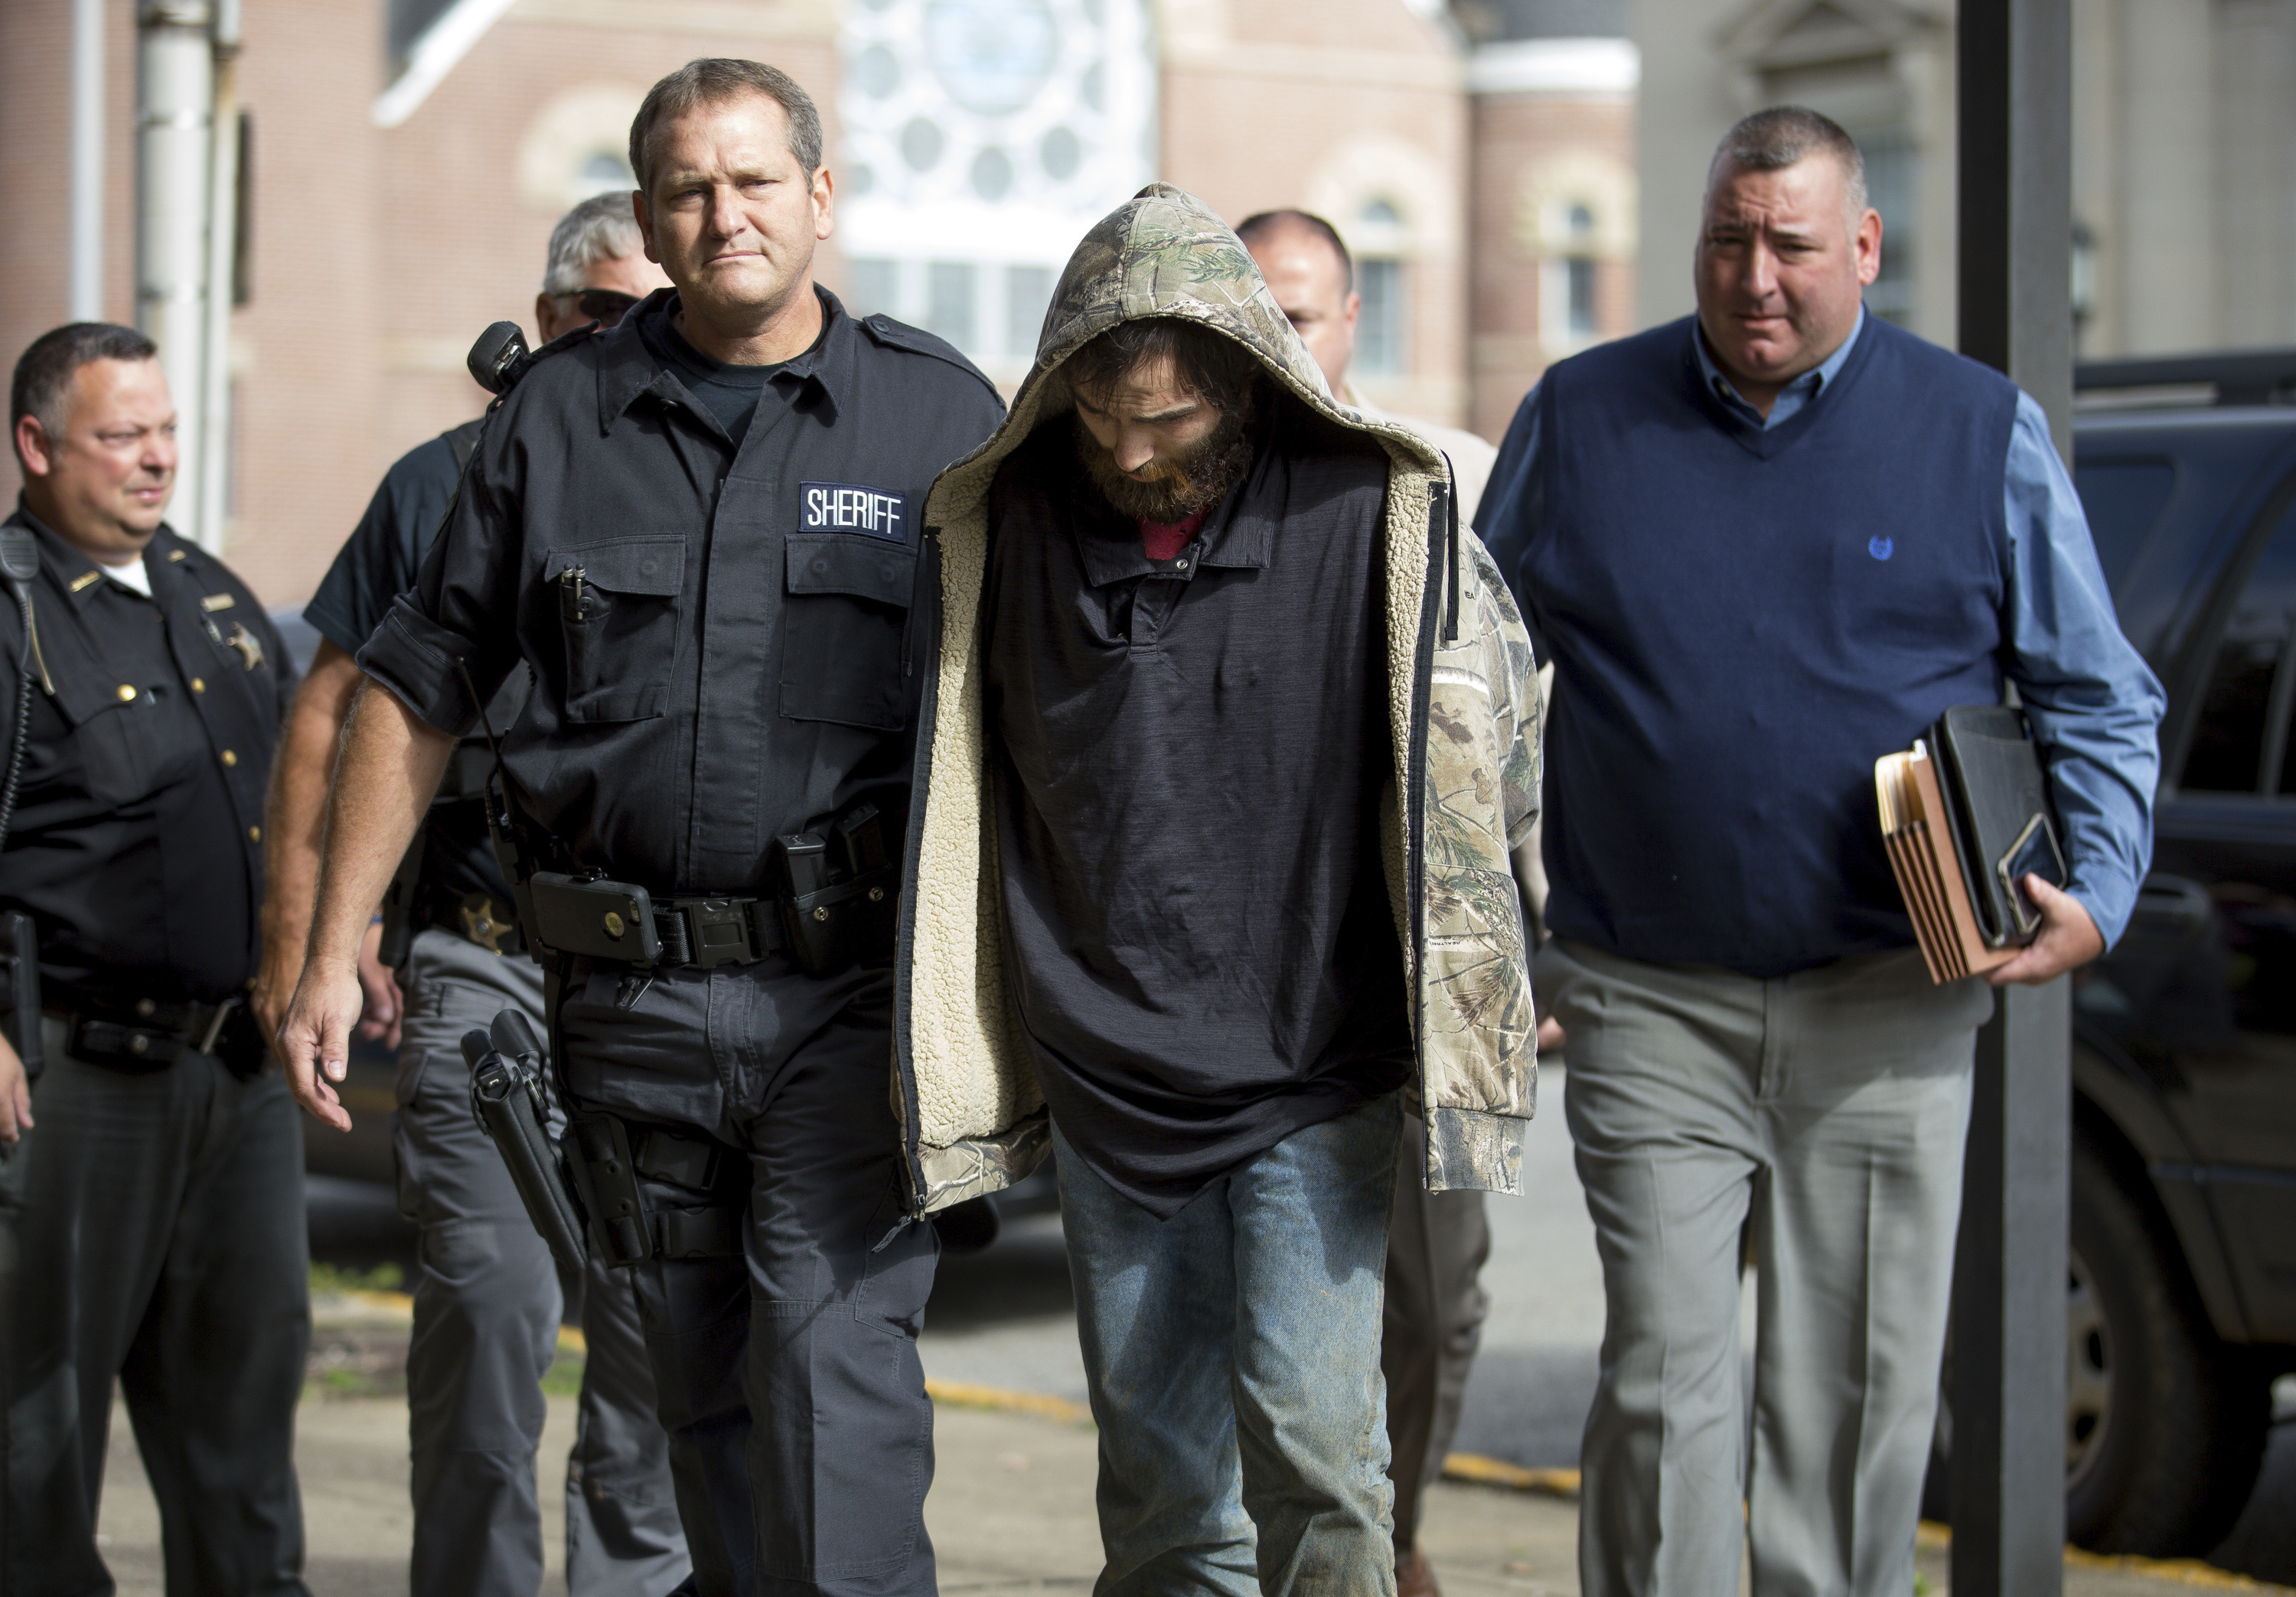 Lawrence County Sheriff Jeff Lawless escorts in Arron Lee Lawson after he was captured on Friday, Oct. 13, 2017, in Ironton, Ohio. Lawson has been arrested on three counts of murder and one count of aggravated murder.(Sholten Singer/The Herald-Dispatch via AP)